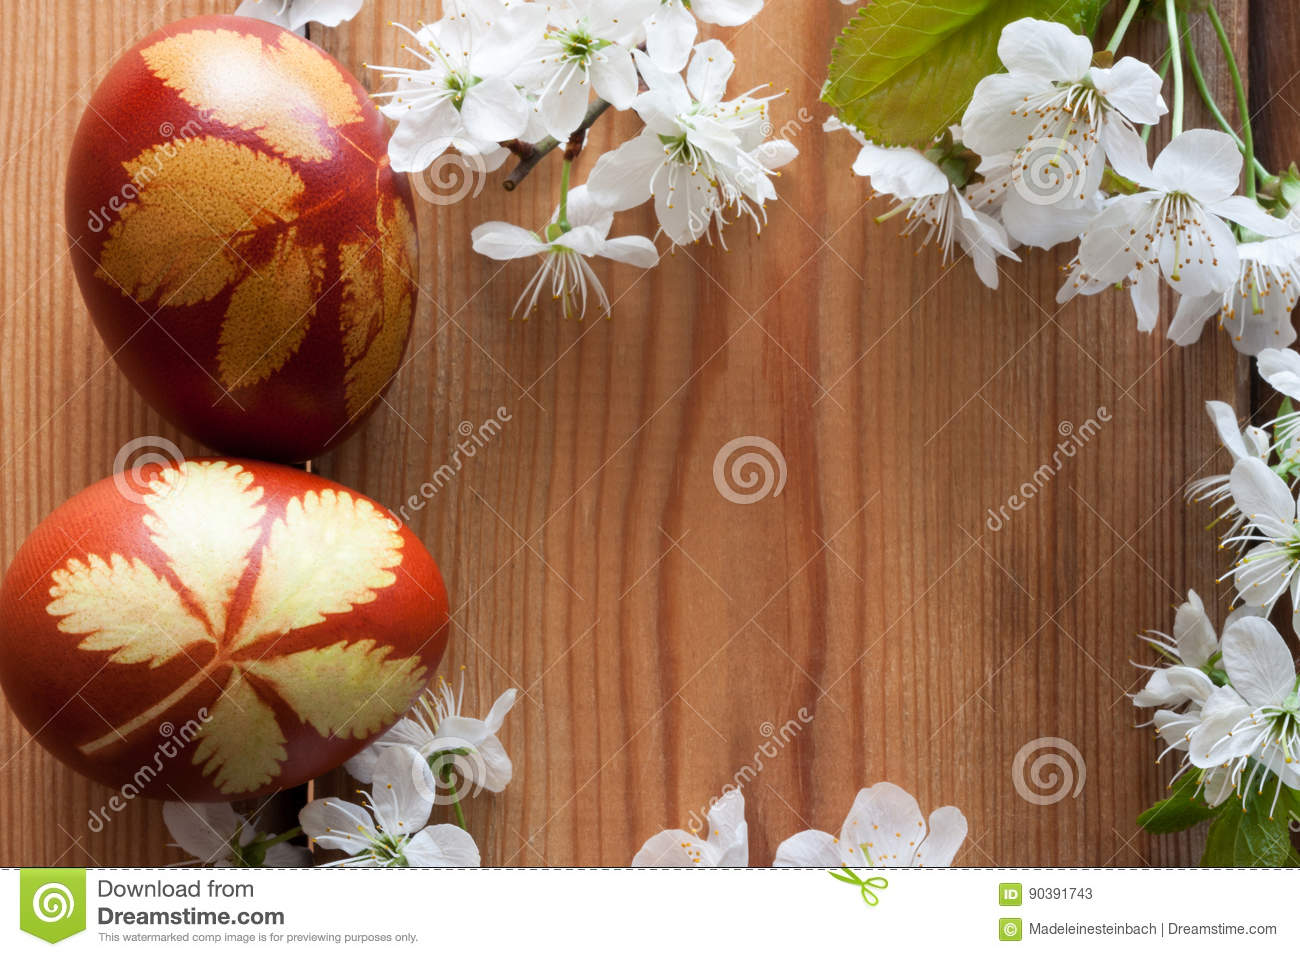 Symbols of spring - Easter eggs dyed with onion peels and cherry blossoms on a wooden background with copy space